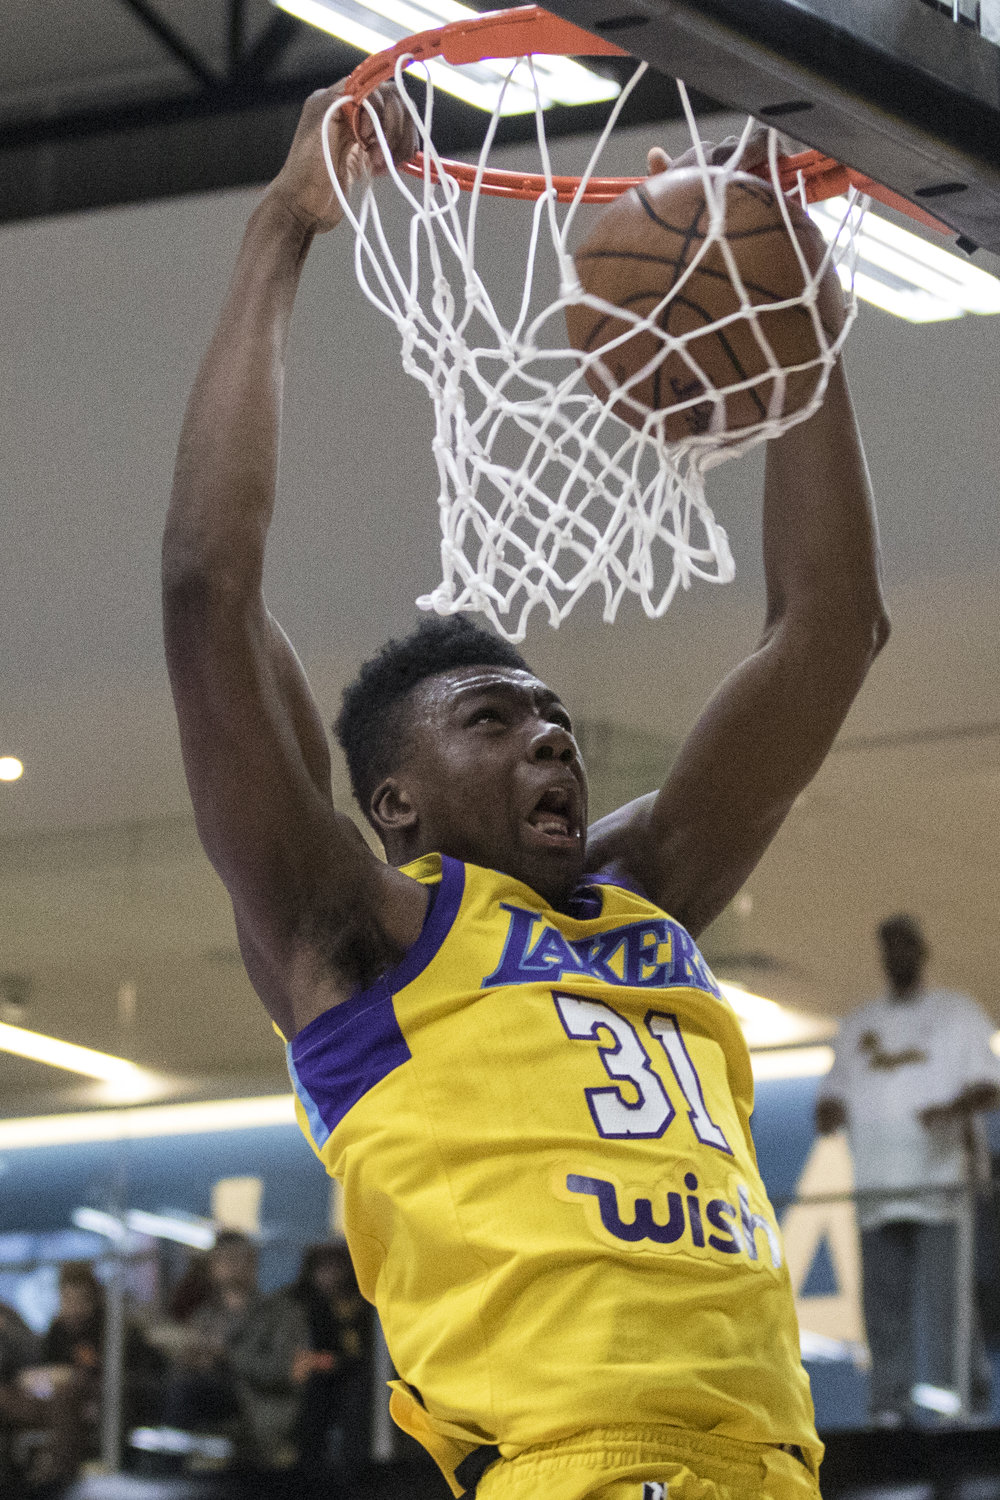 South Bay Lakers center Thomas Bryant dunks the ball in his Gatorade League game against the Agua Caliente Clippers which took place at UCLA Health Stadium in El Segundo, California  on March 15, 2018. (Zane Meyer-Thornton/ Corsair Photo)